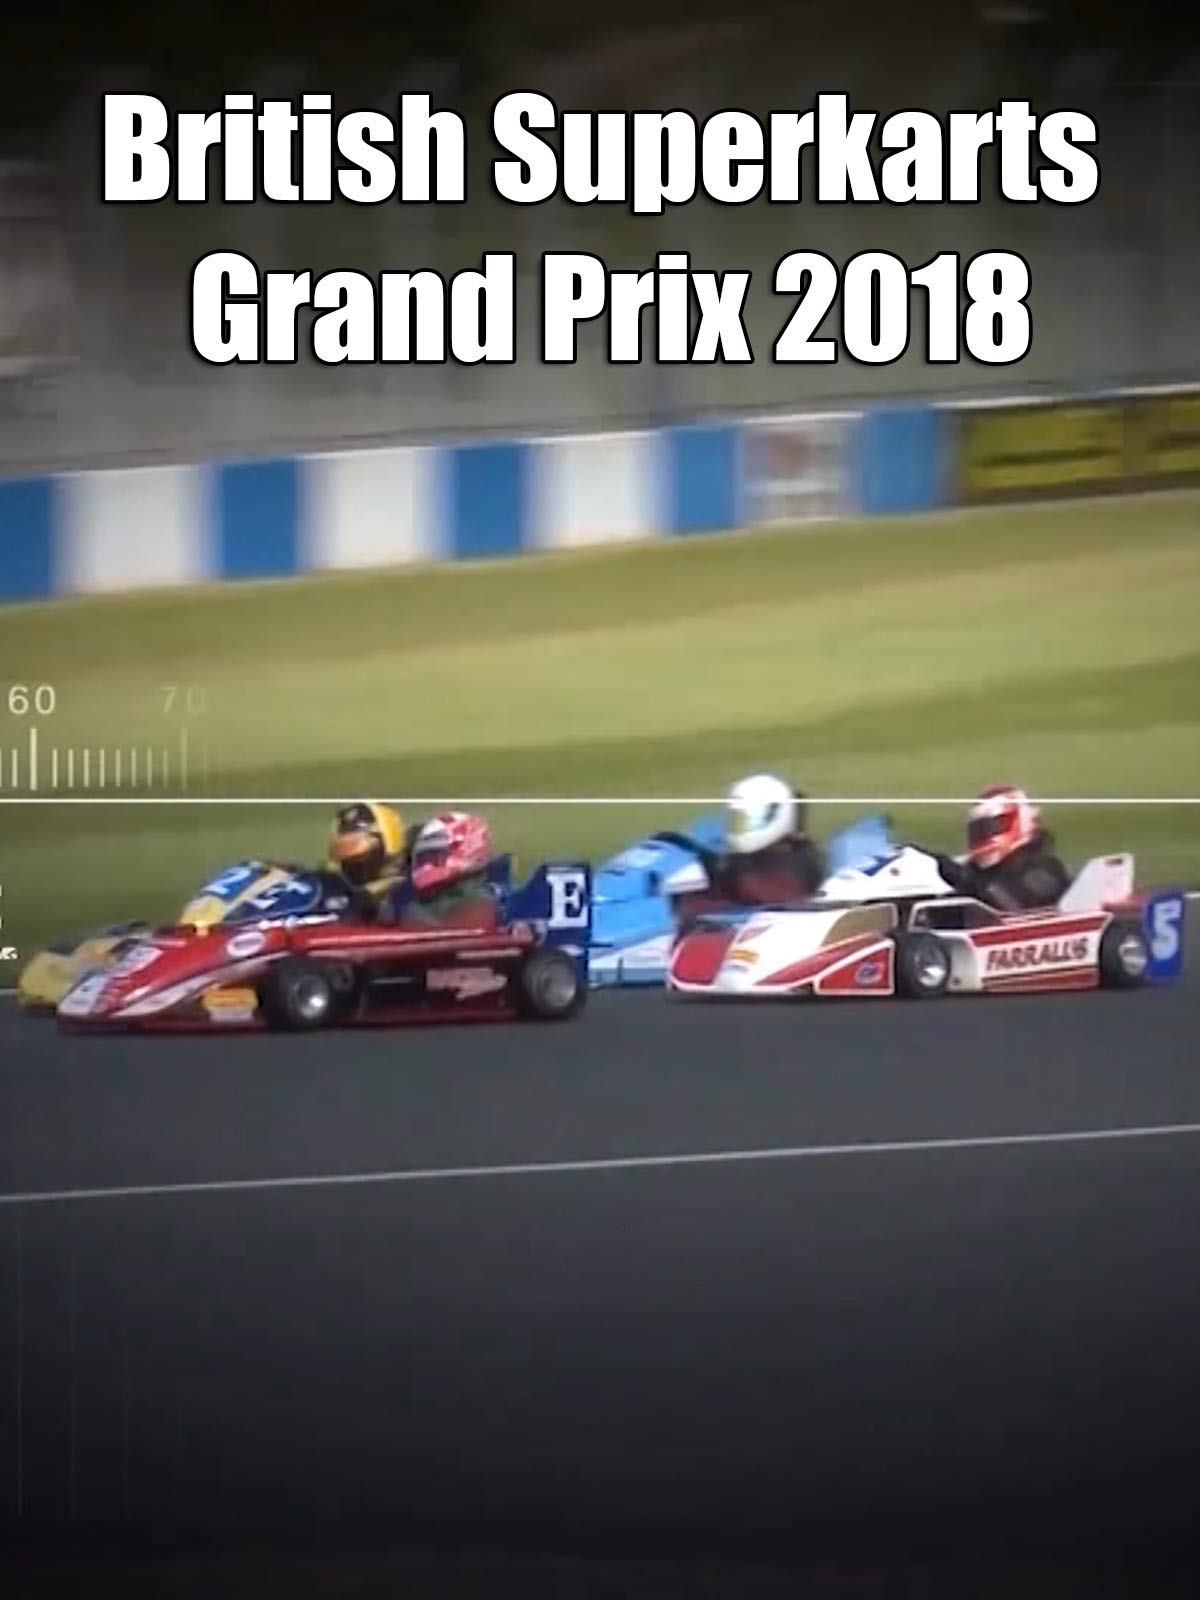 British Superkarts Grand Prix 2018